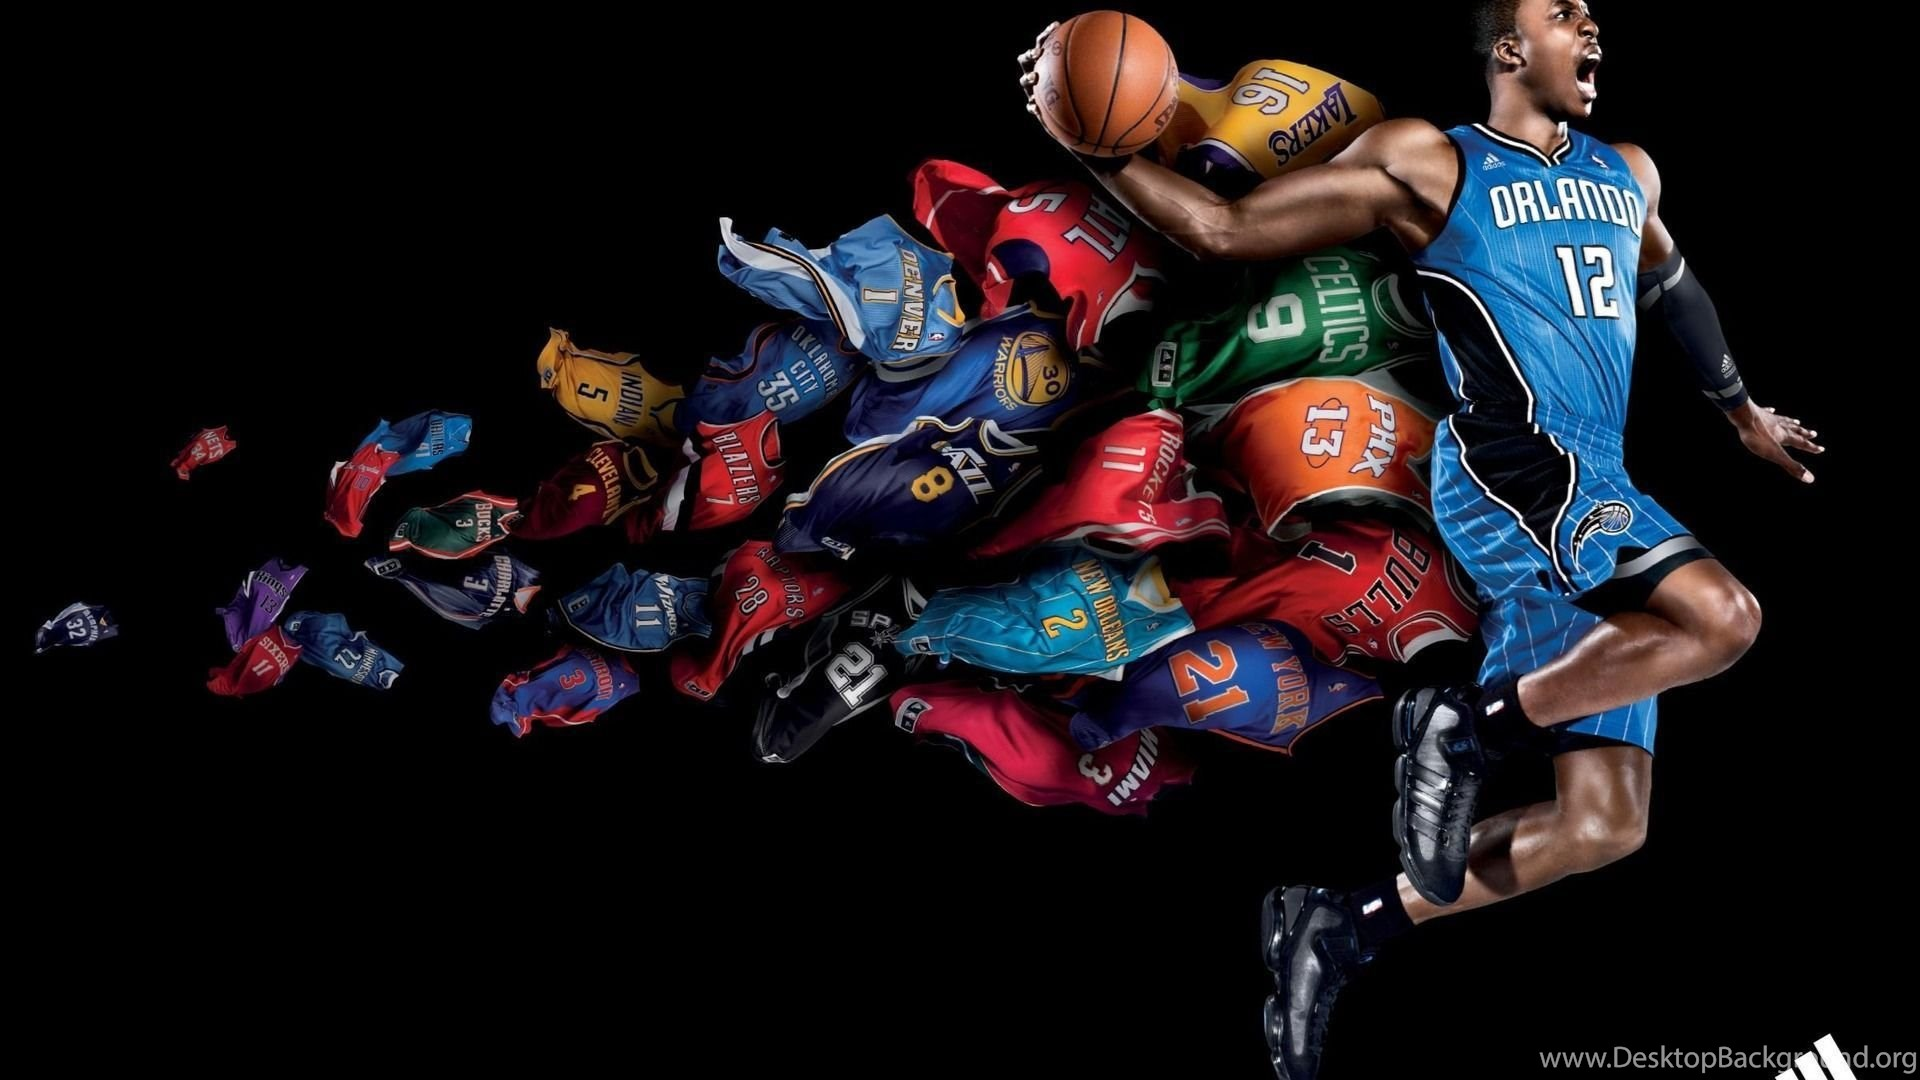 top dwight howard nba wallpaper images for pinterest desktop background